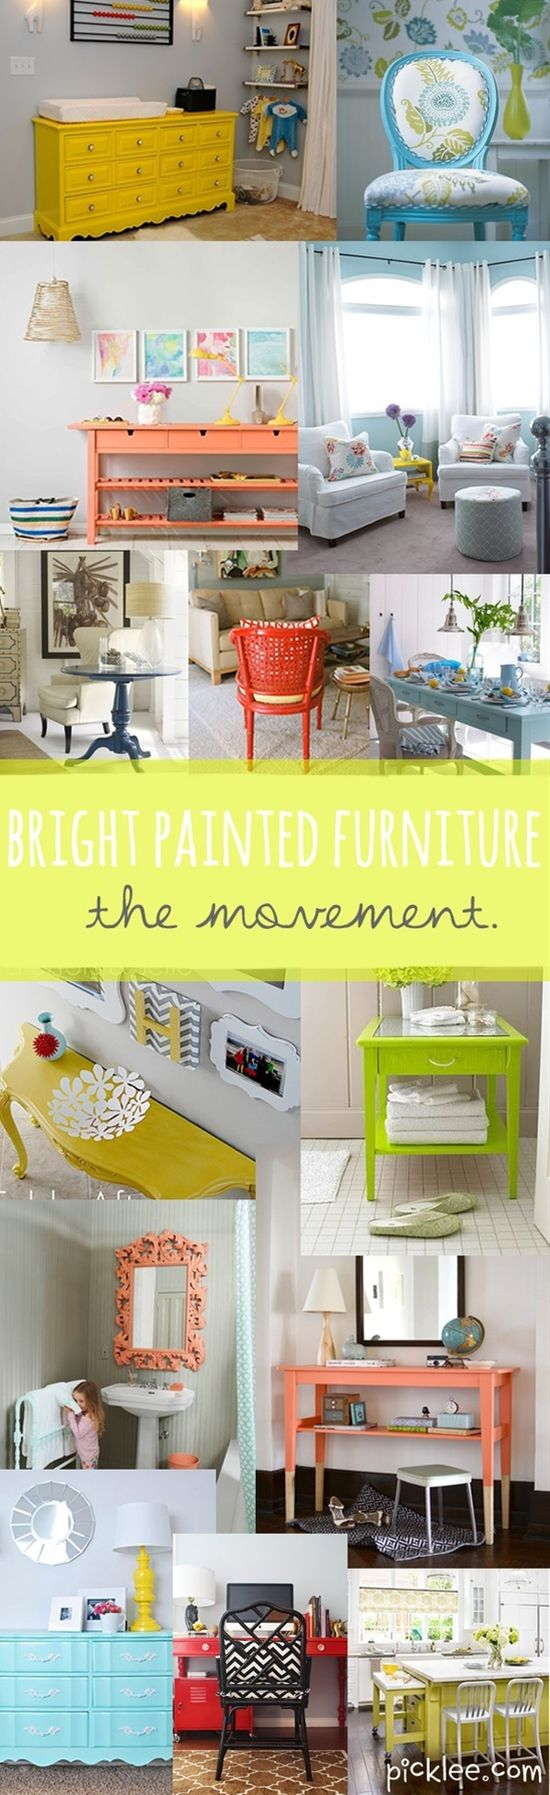 best furniture reloved images on pinterest